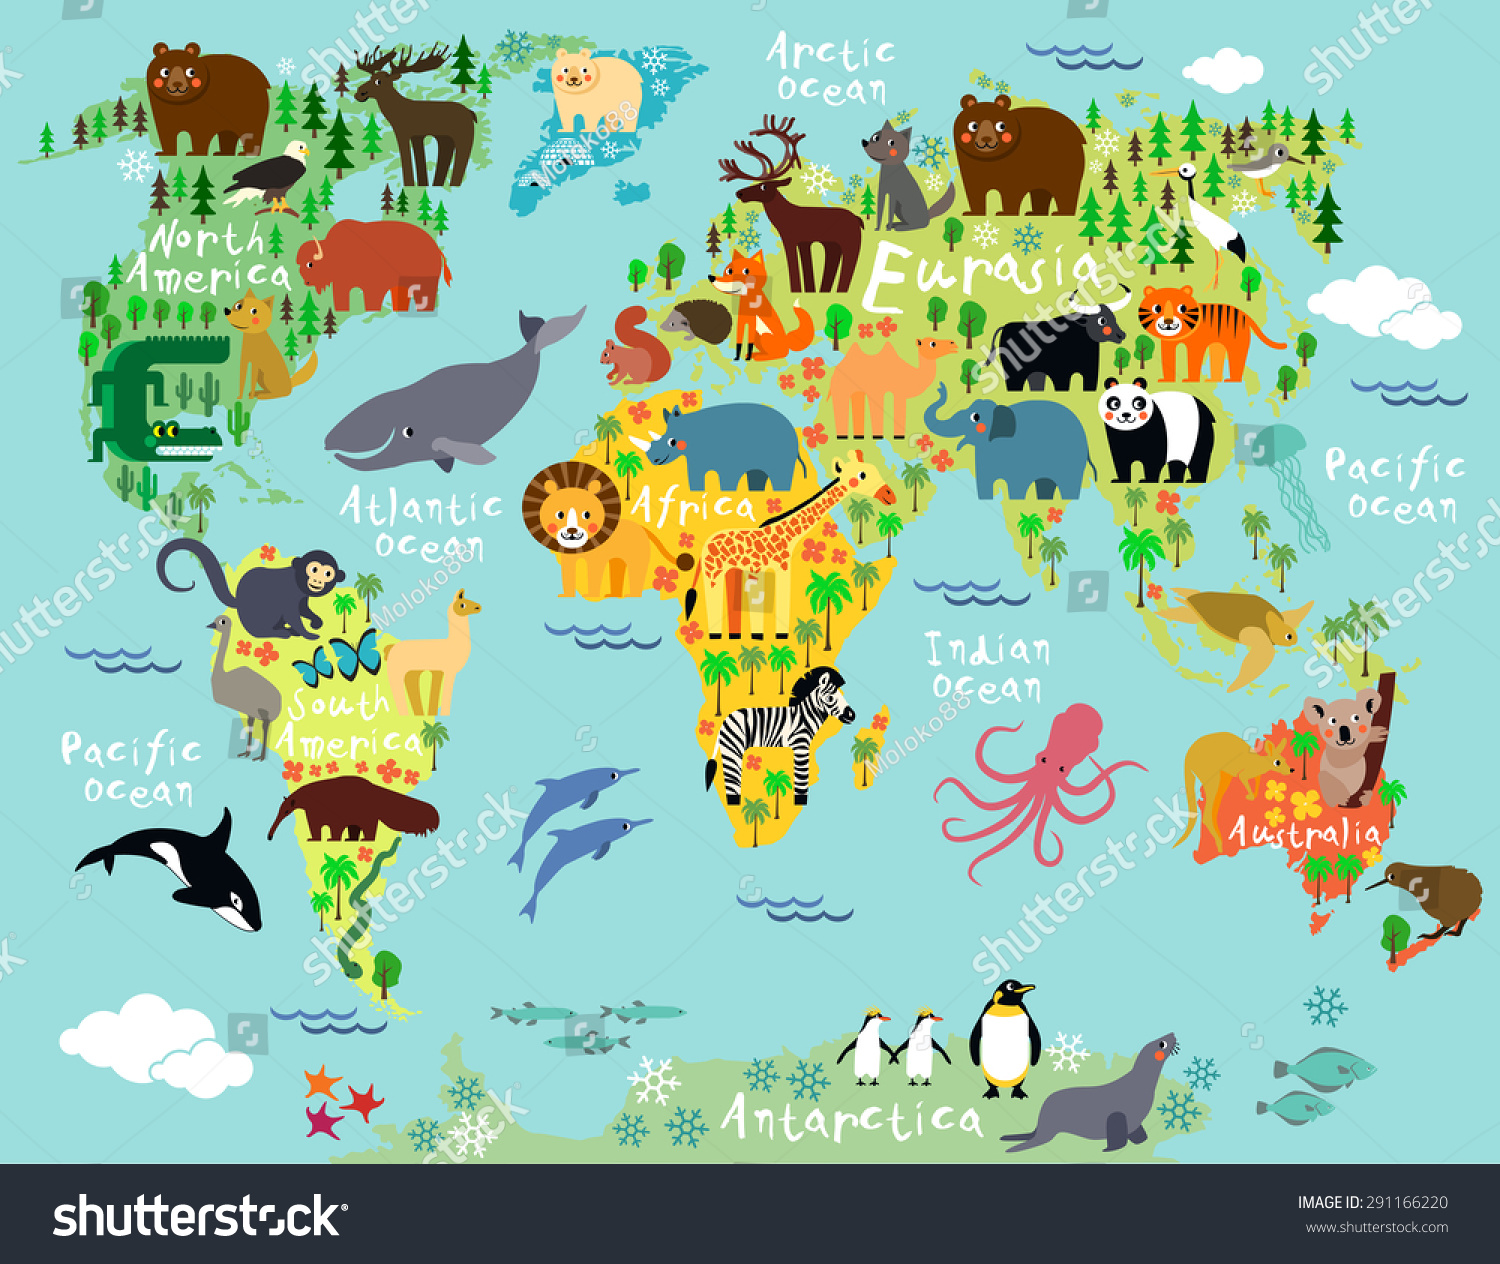 Animal Map World Children Kids Stock Vector (Royalty Free ... on world religion map, big world map, most beautiful map, world language families map, 1910s world map, global world map, cold desert world map, old world map, rivers on world map, red sea on world map, america centered world map, spanish world map, cute world map, m world map, world political map, andes mountains on world map, tectonic plate boundaries world map, world time zone map, detailed world atlas map,